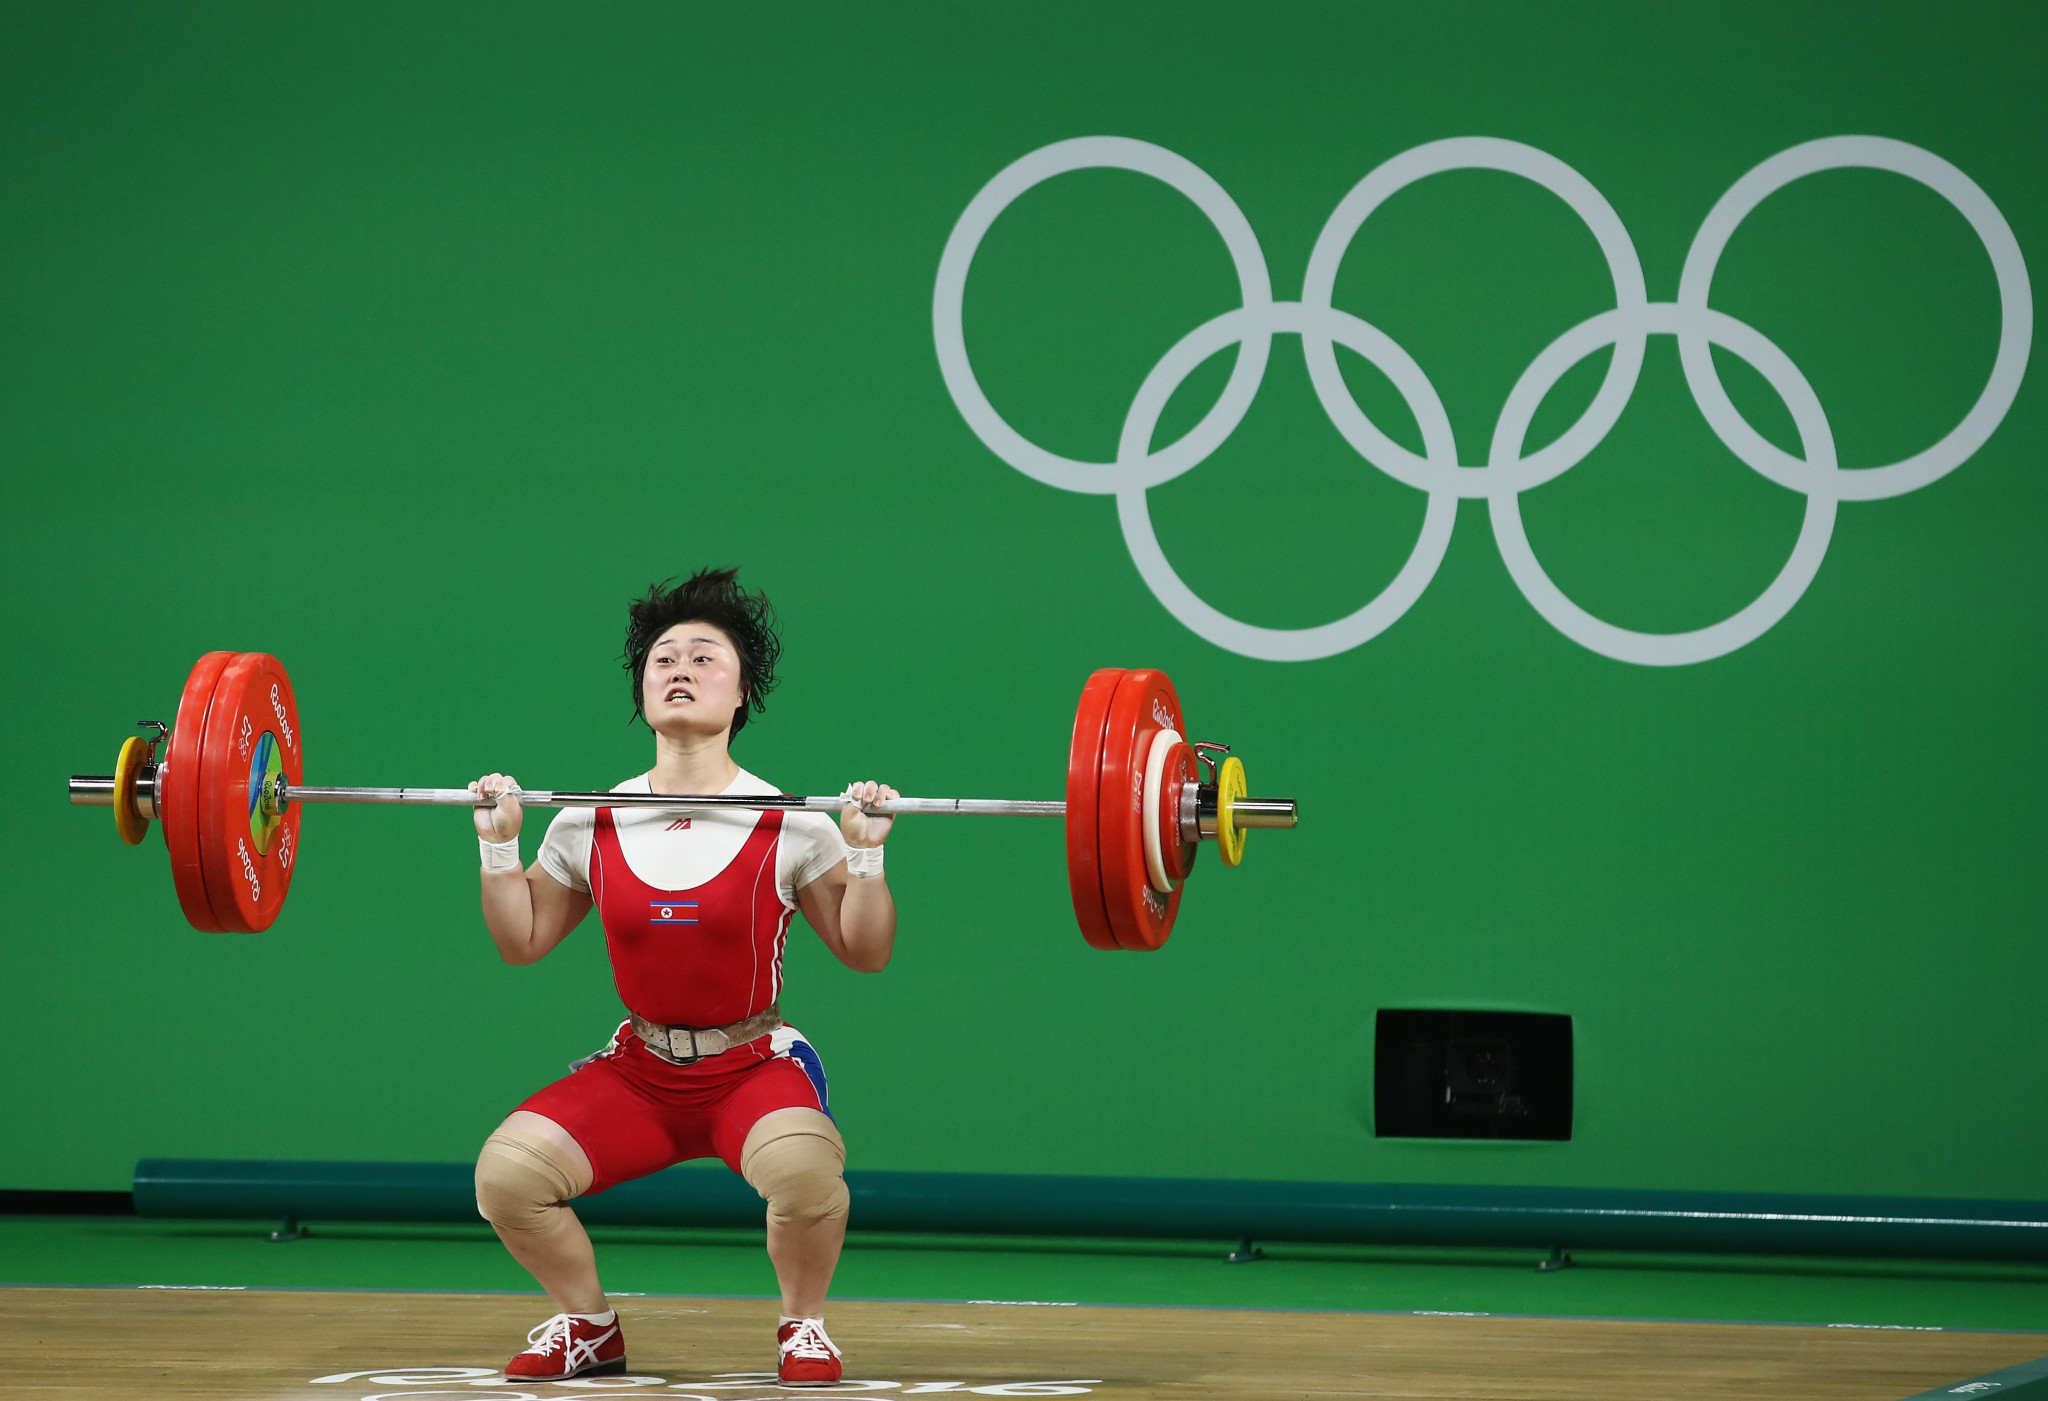 Choe Hyo-sim, a Rio 2016 silver medallist, is one of the leading North Korean weightlifters who had been expected to challenge for an Olympic title later this year ©Getty Images